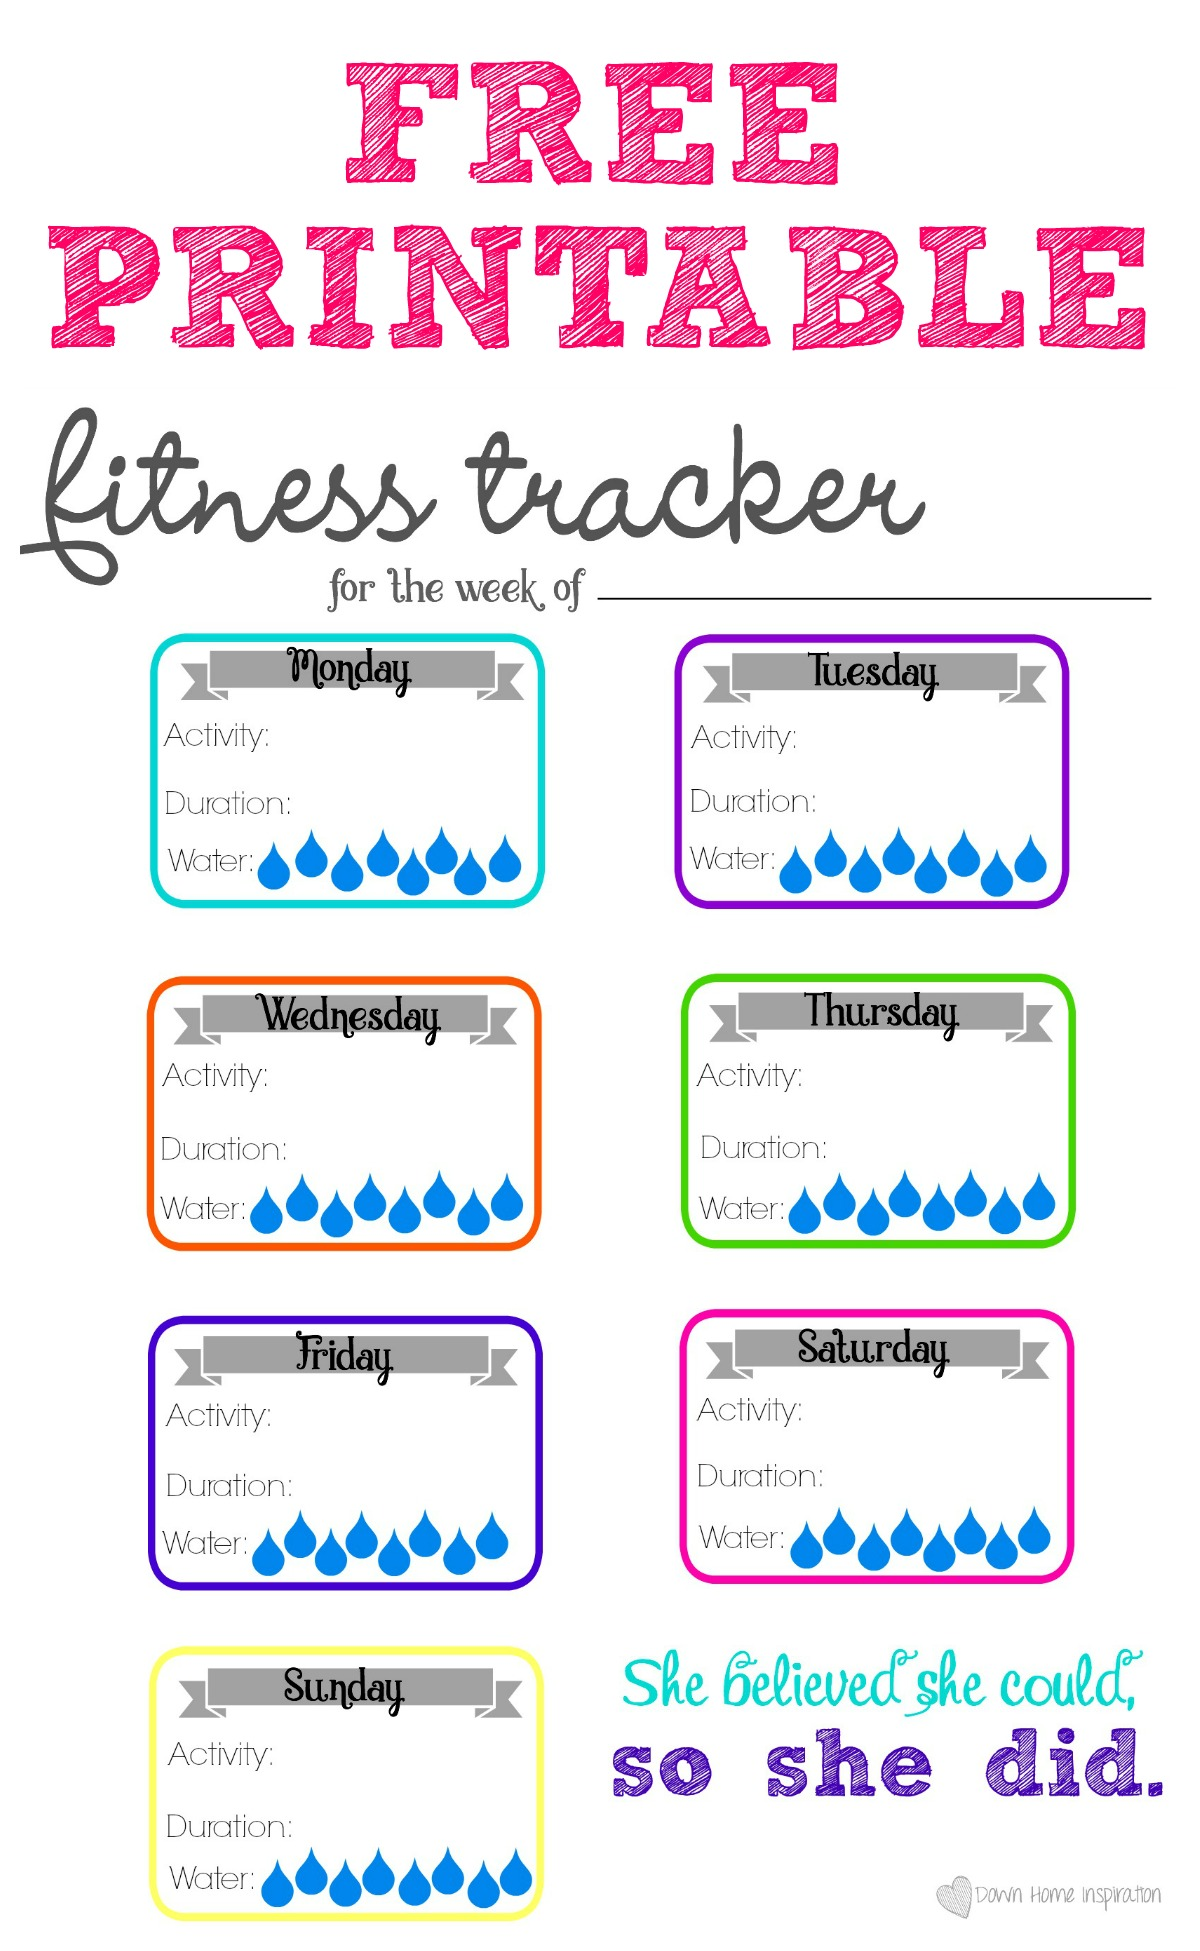 photo relating to Fitness Tracker Printable known as Totally free Printable Health and fitness Tracker - Down Property Commitment